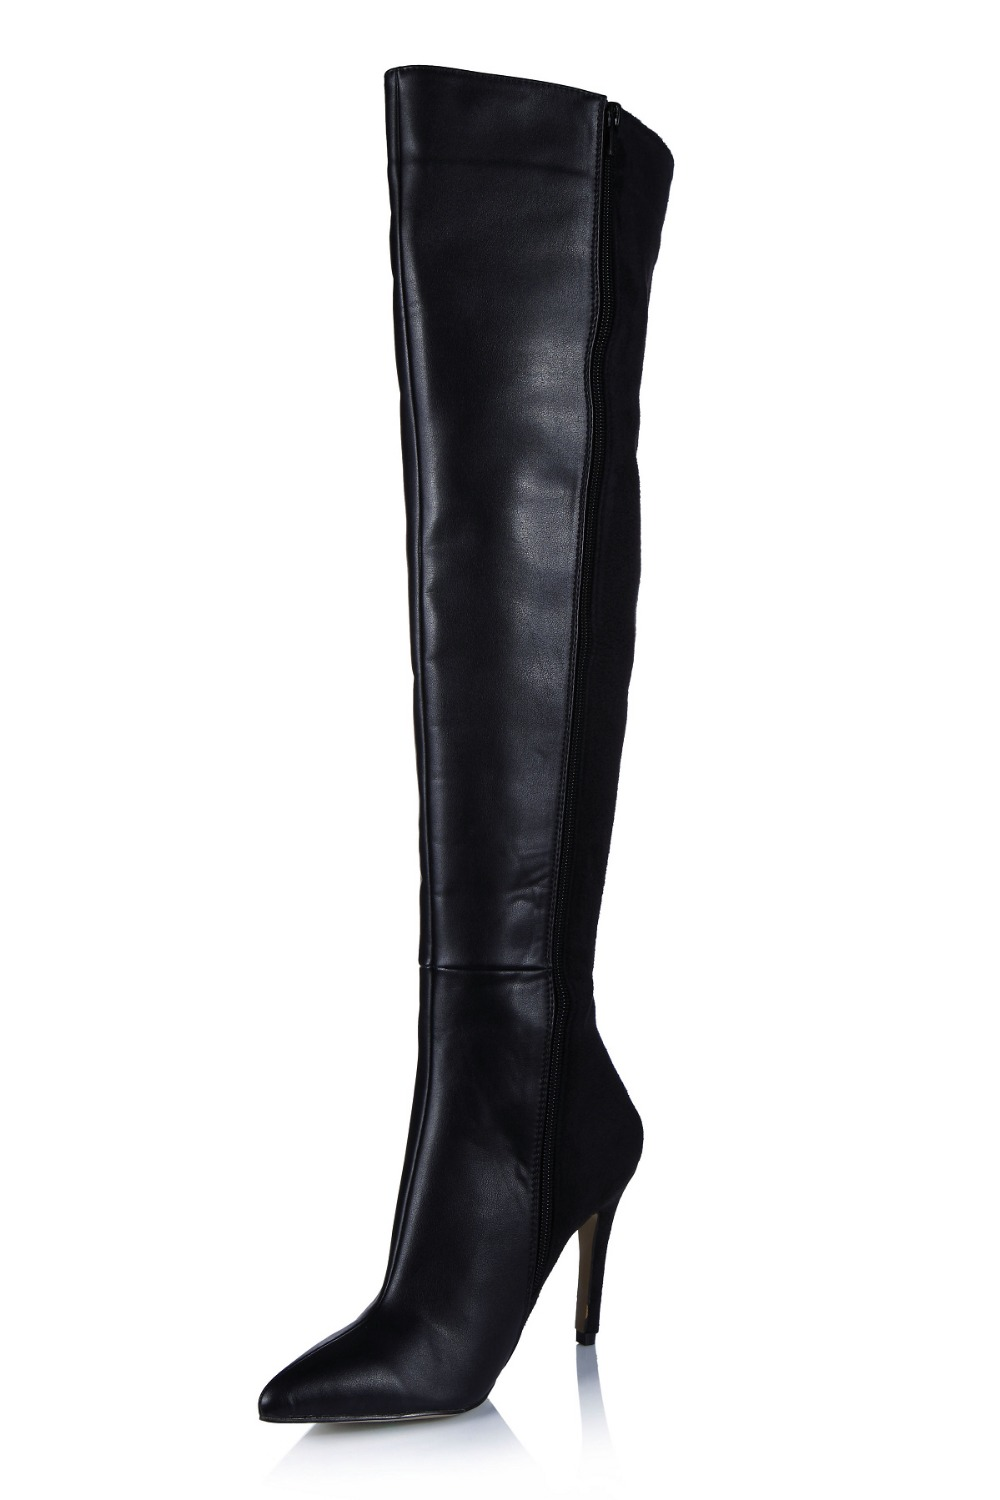 sexy pointed toe stiletto high heels thigh long boots fashion zipper over knee high boots stretch fabric women winter shoes pump hot runway sexy women boots stretch silk pointed toe stiletto high heels over the knee boots jersey thigh high boots shoes woman